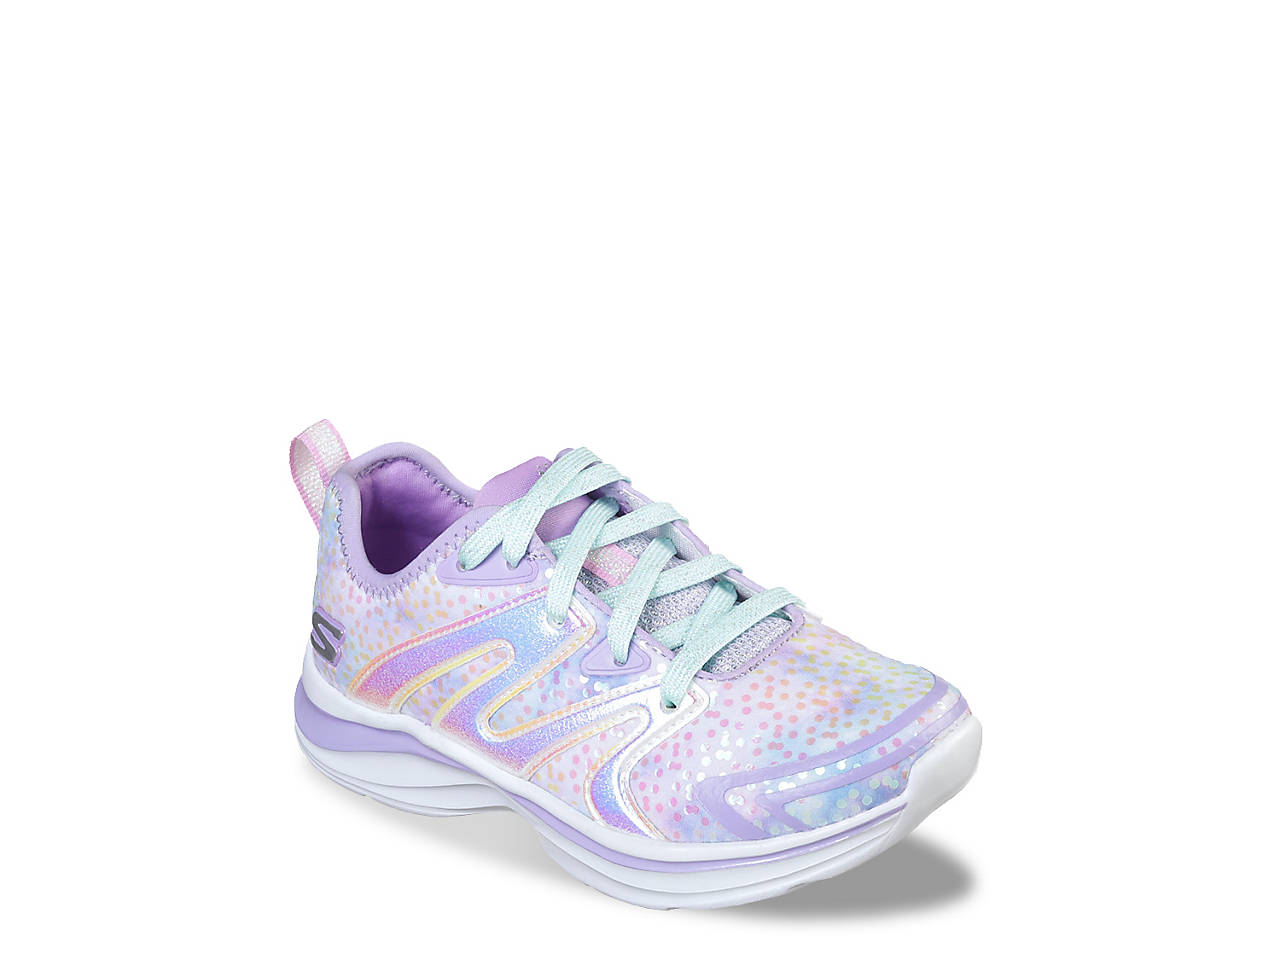 804eced30203 Skechers Double Dreams Unicorn Kisses Toddler   Youth Sneaker Kids ...